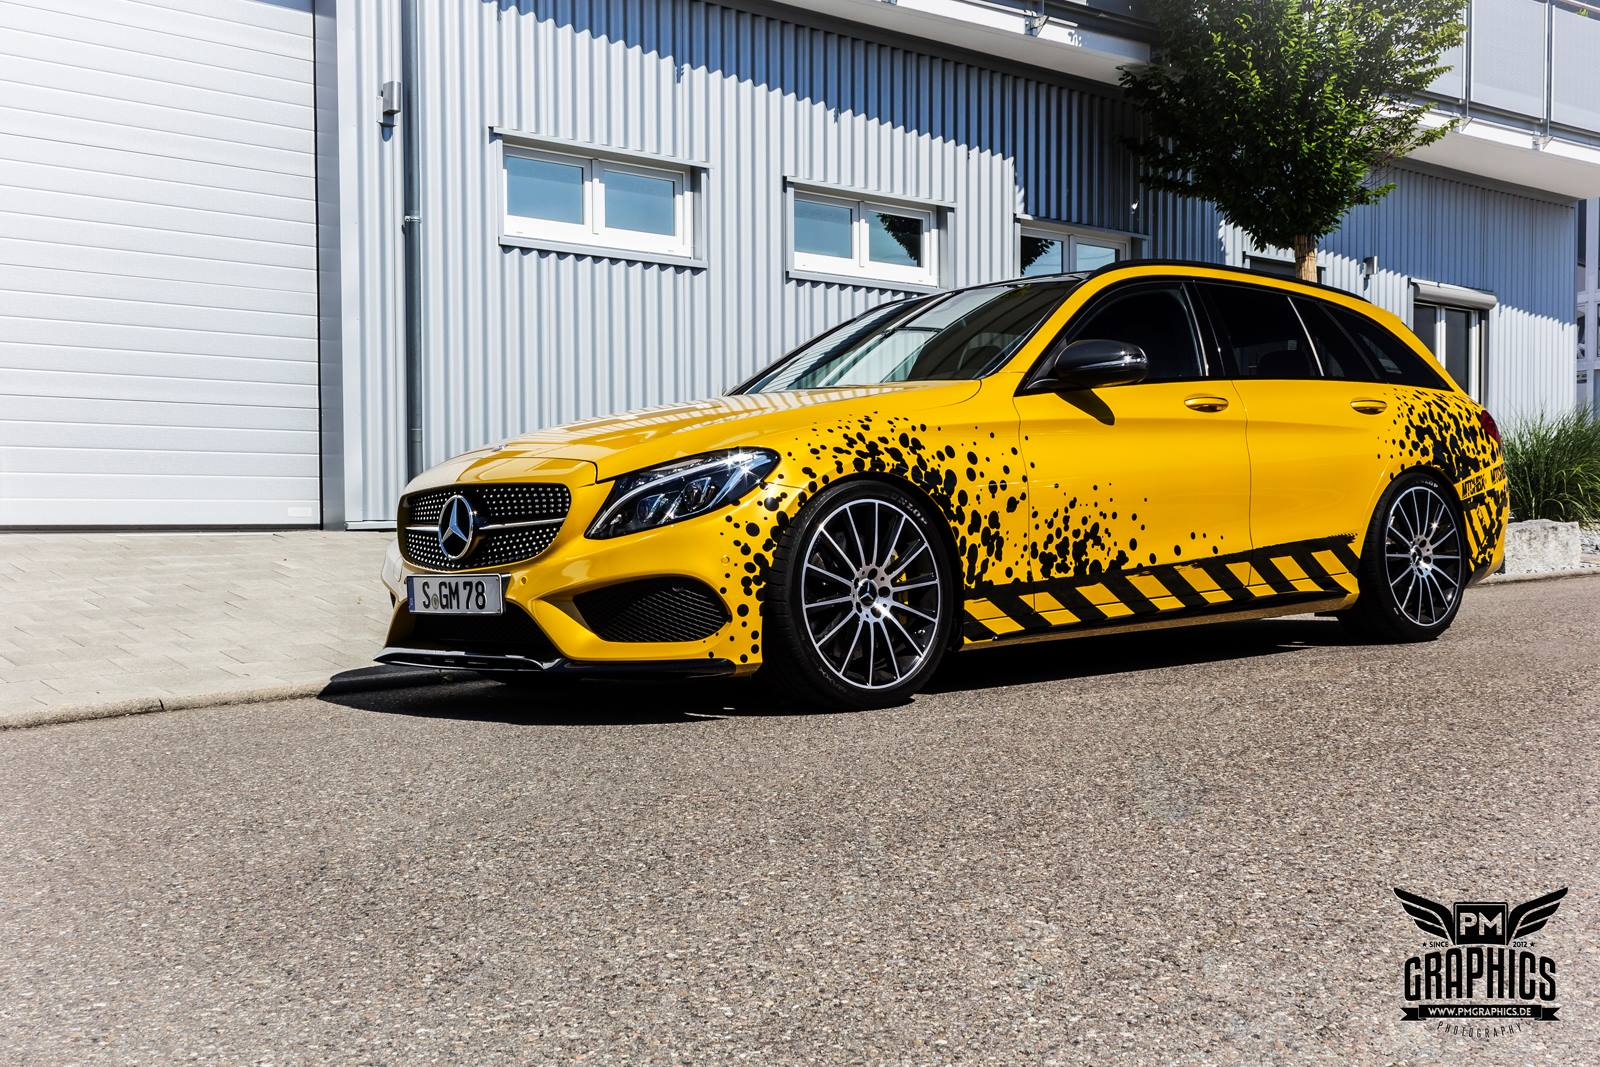 mercedes c450 amg yellow taxi vs c43 in silky blue wrap. Black Bedroom Furniture Sets. Home Design Ideas